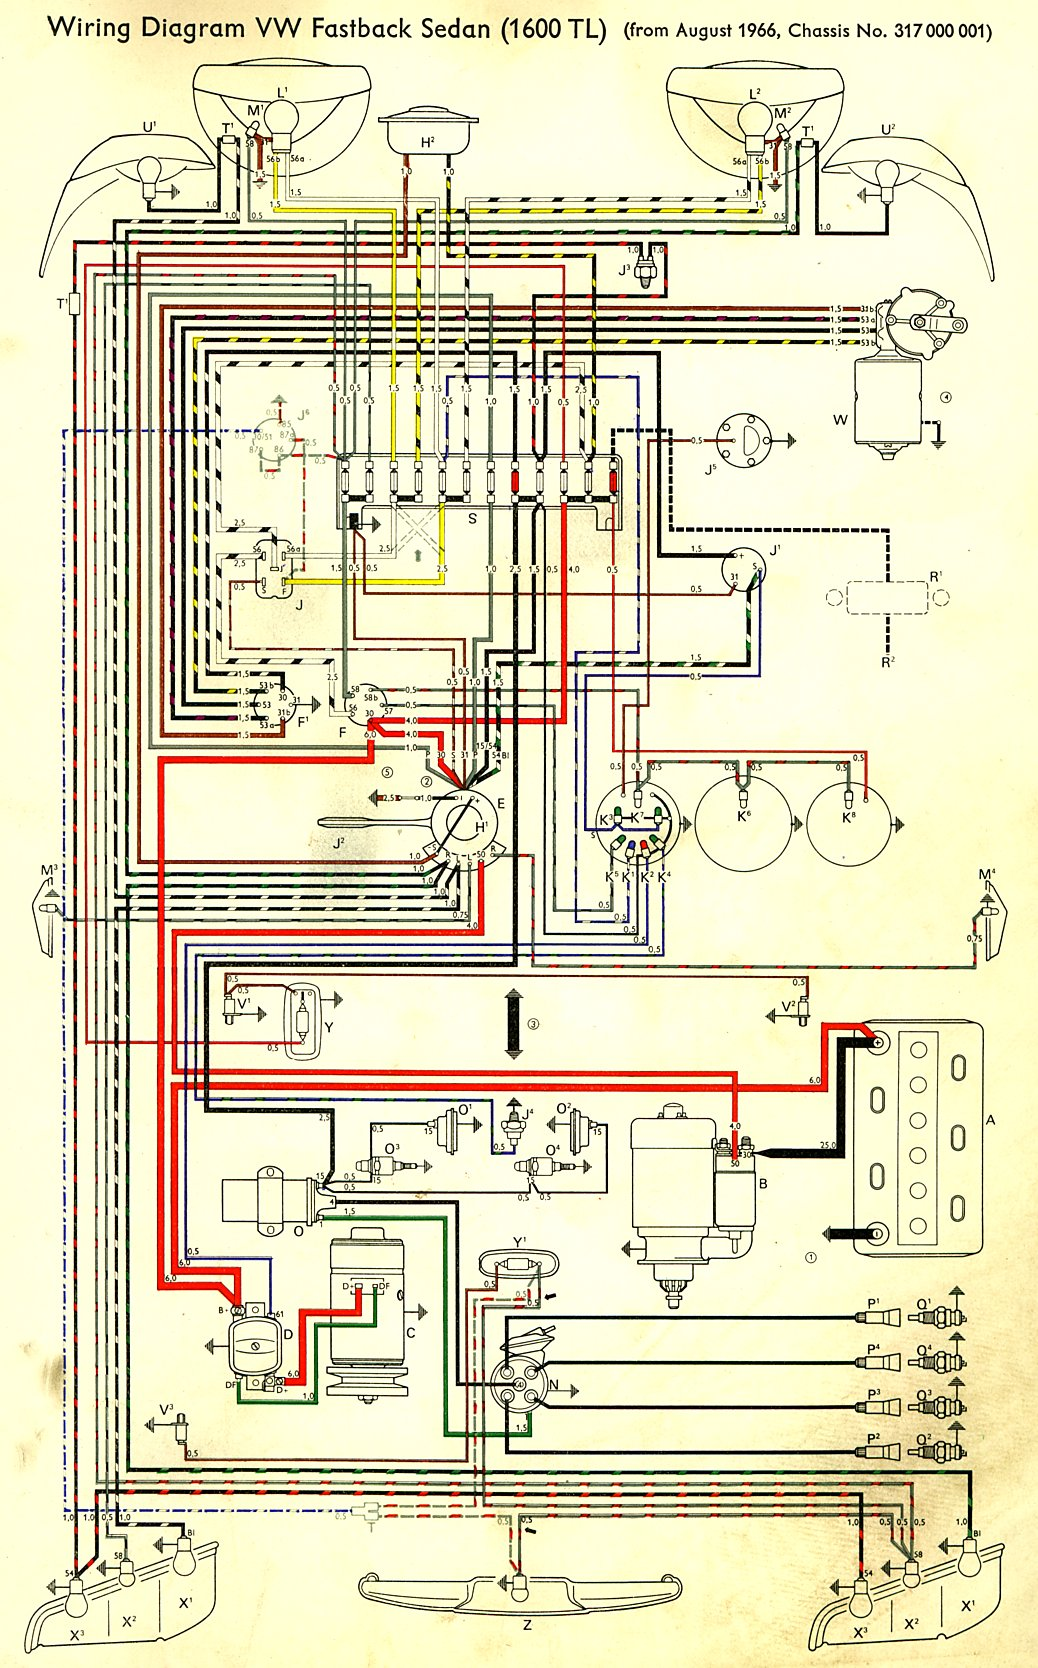 71 Vw Type 3 Wiring Diagram Another Blog About Feniex Light 67 Beetle Horn Free Engine Image For User